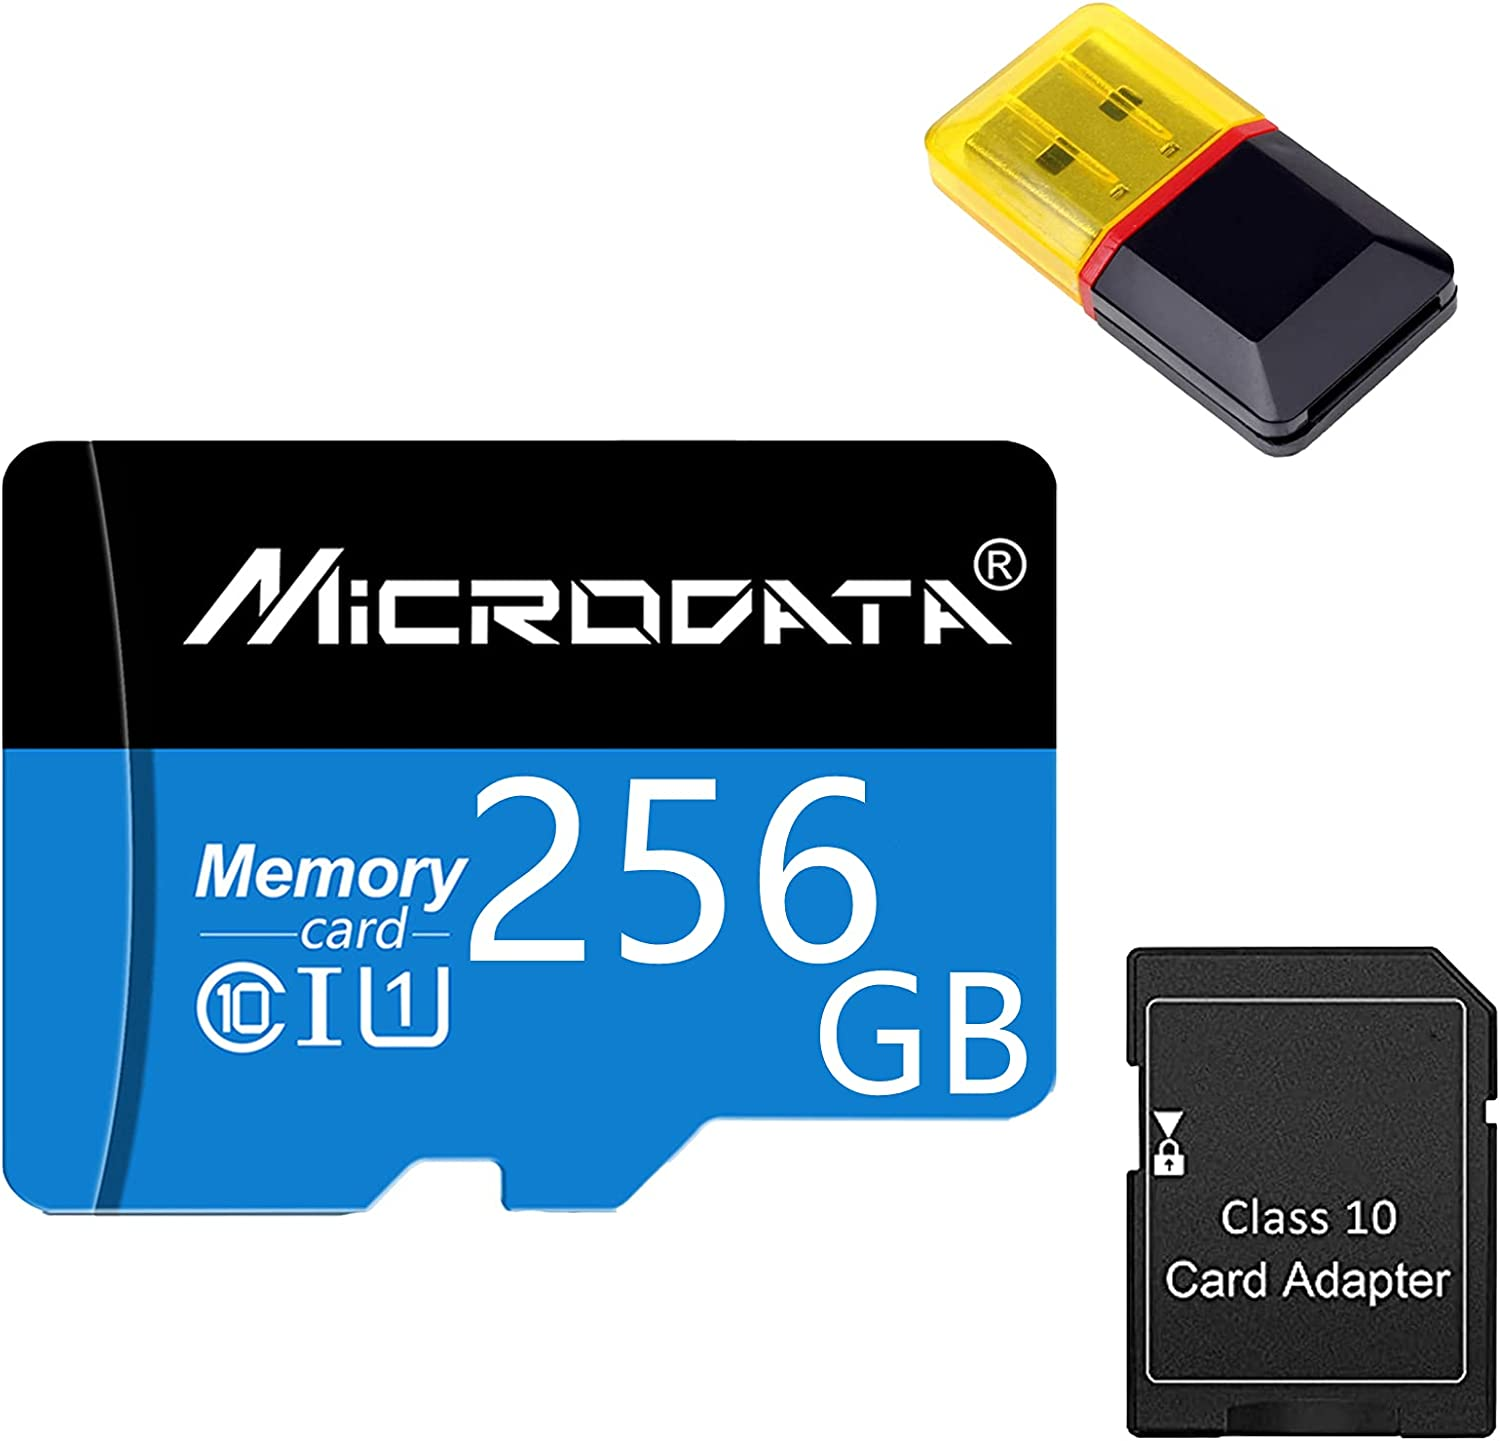 Gmjay Micro SD Card TF Memory Reader Class 10 with Adapter 35% Max 40% OFF OFF